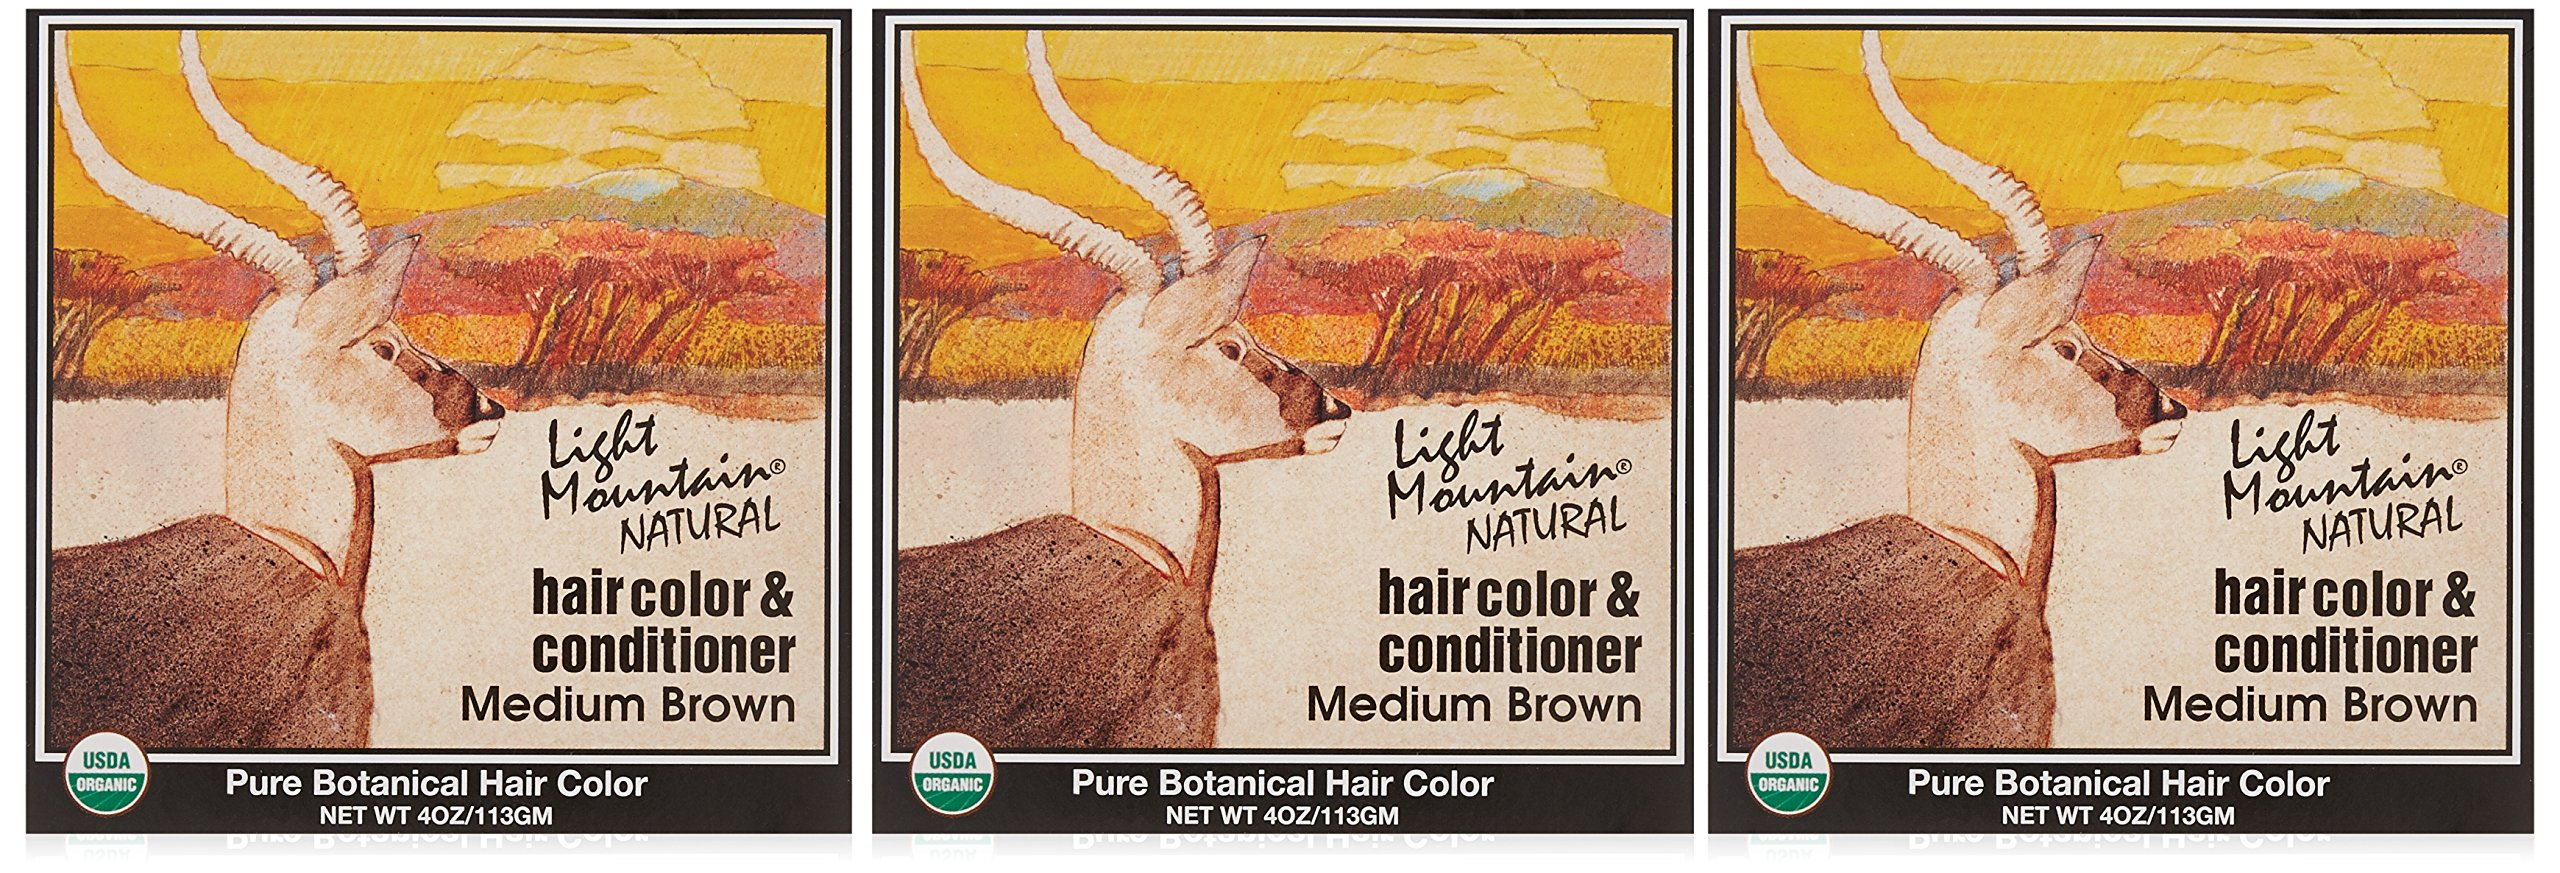 Light Mountain Natural Hair Color & Conditioner, Medium Brown, 4 oz (113 g) (Pack of 3)